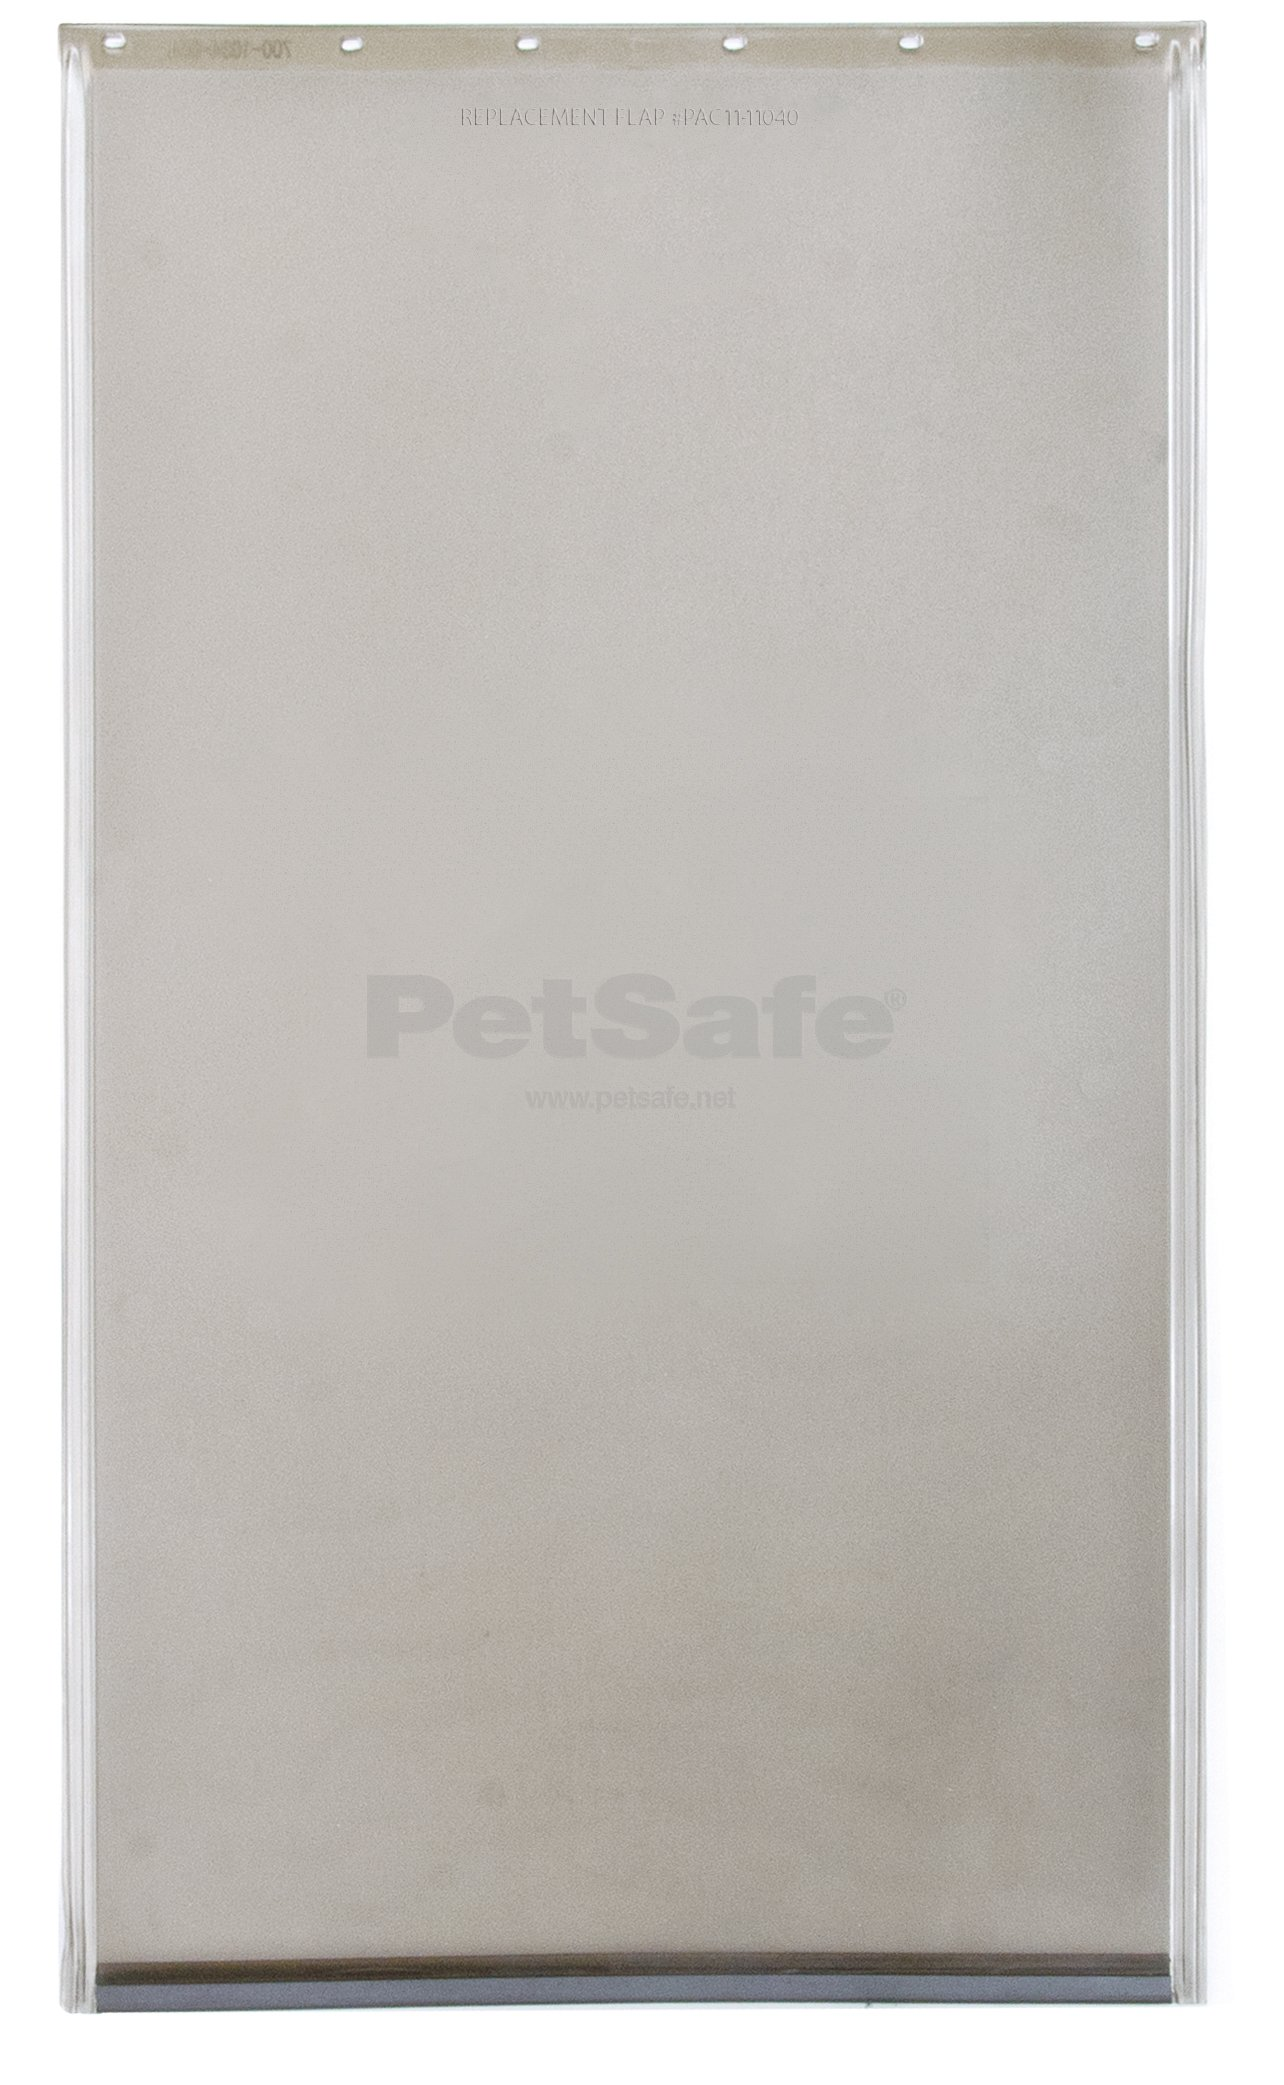 PetSafe Dog and Cat Door Replacement Flap, X-Large, 13 5/8'' x 24 3/8'', PAC11-11040, Tinted Vinyl, Magnetic